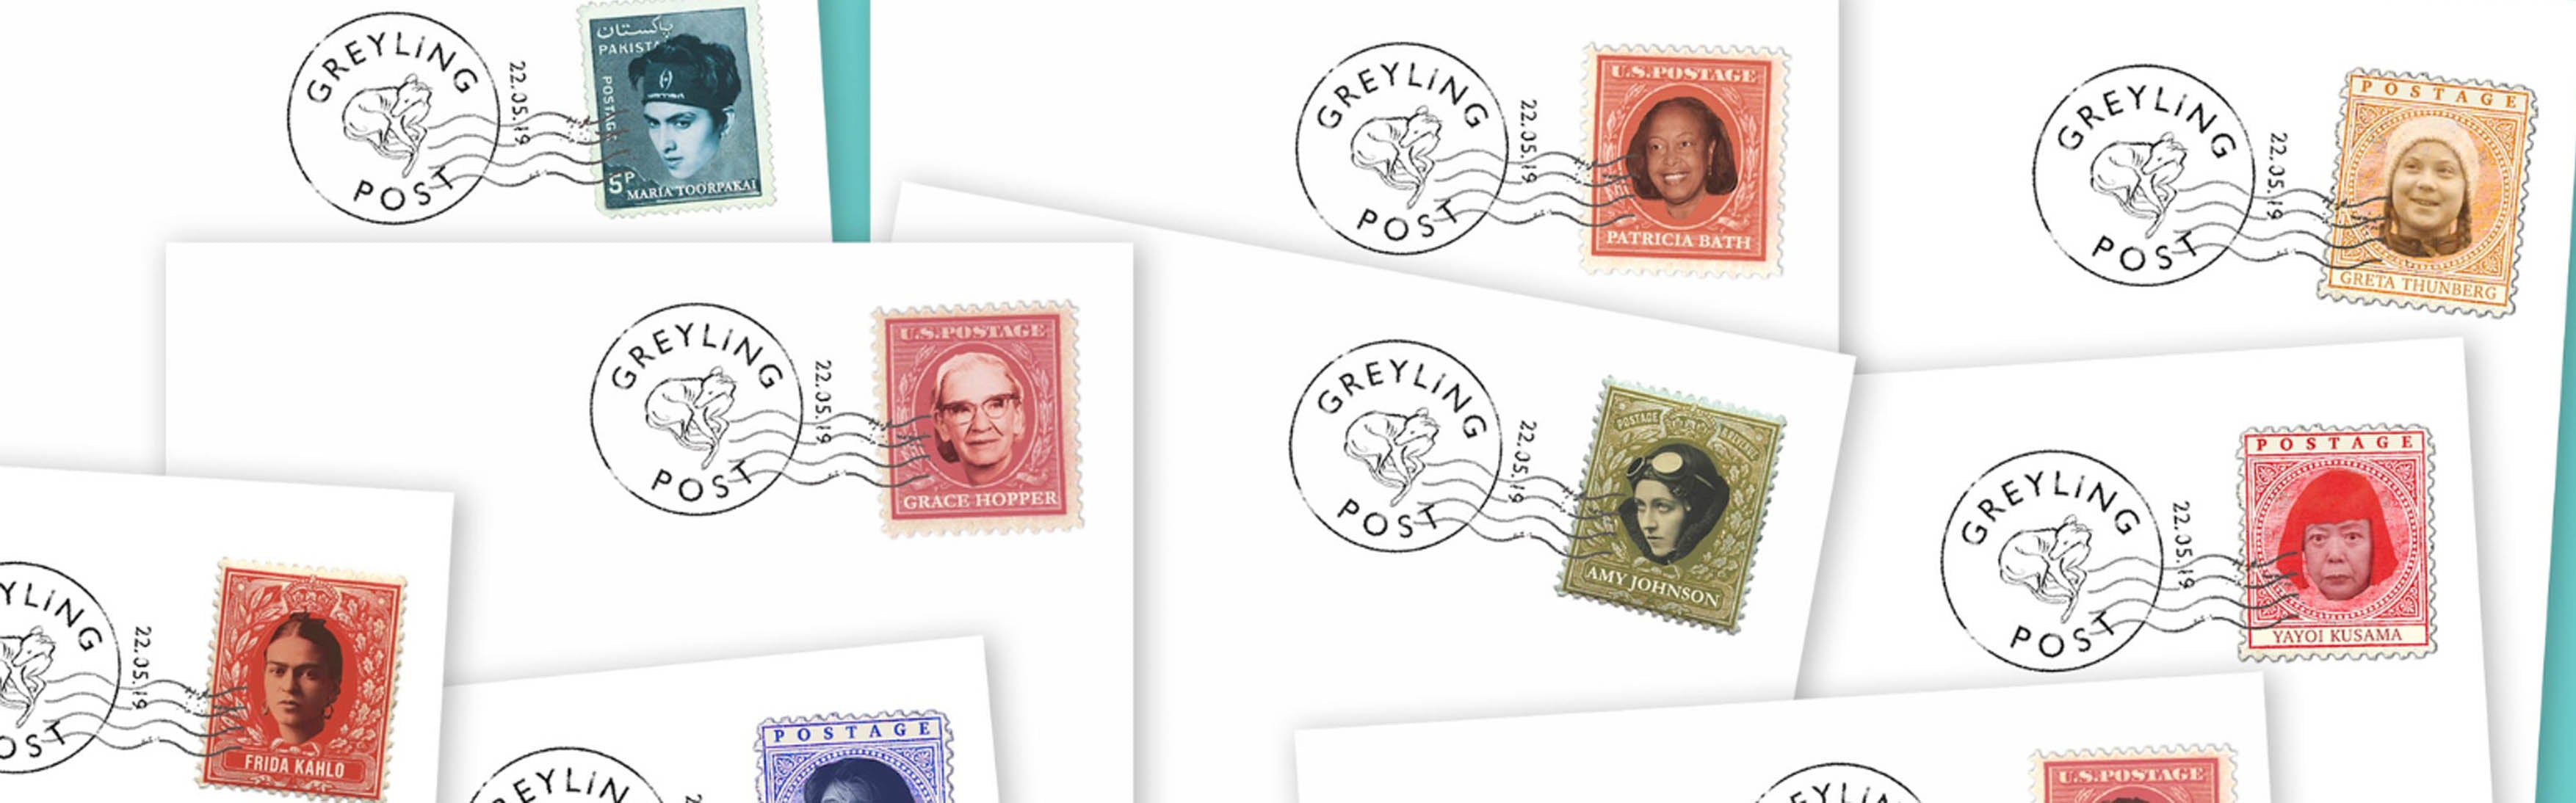 stamps, greta thunberg, greyling post, cards to care homes